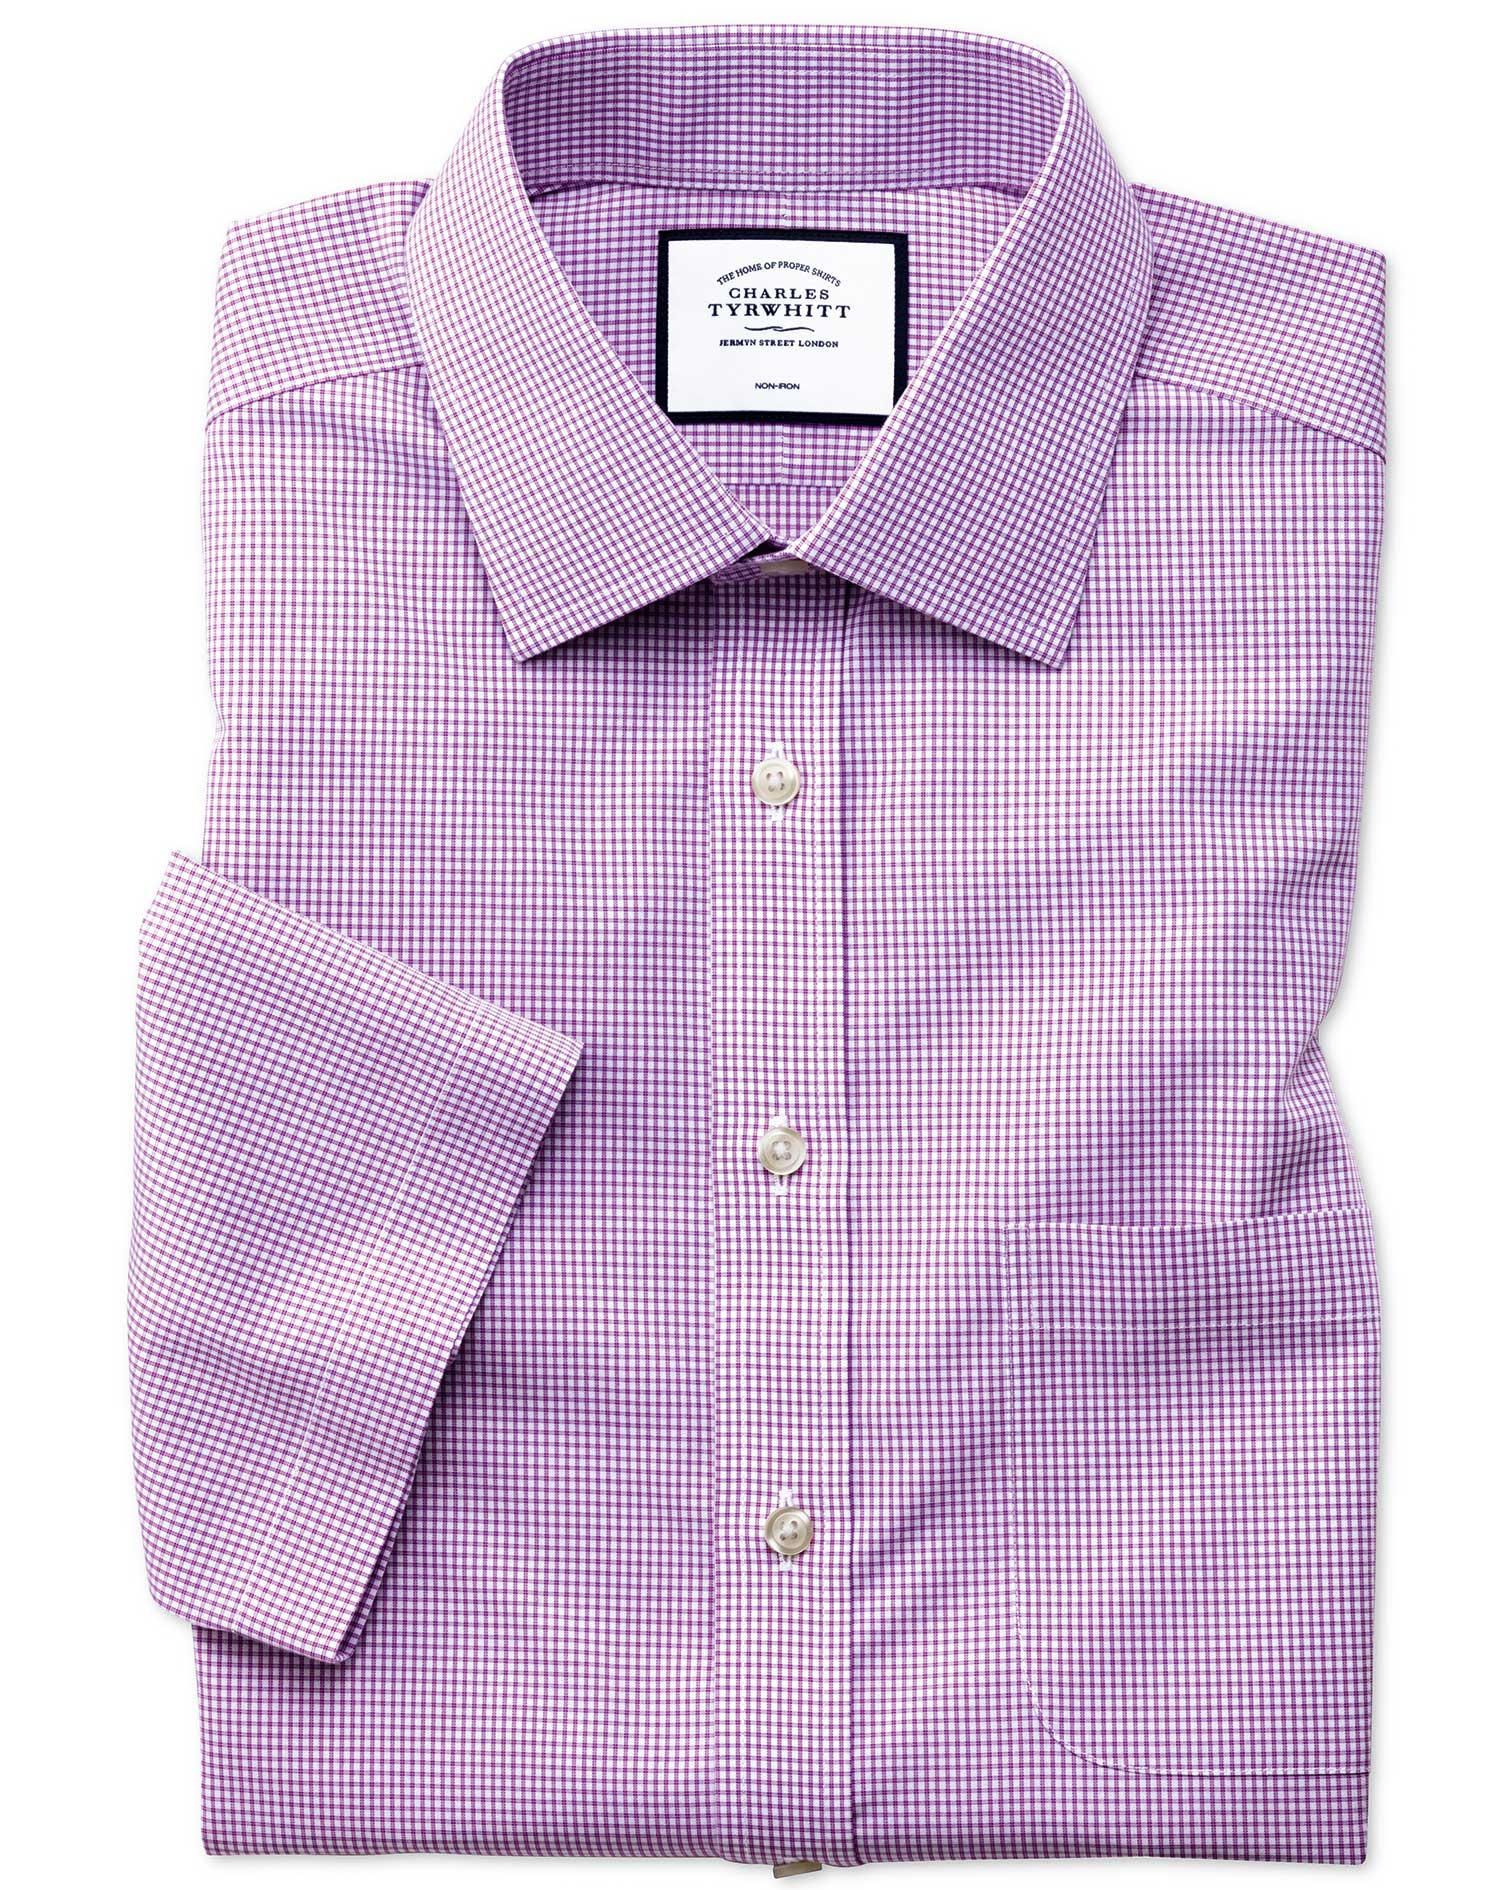 Classic Fit Non-Iron Natural Cool Short Sleeve Pink Check Cotton Formal Shirt Size 18/Short by Charl